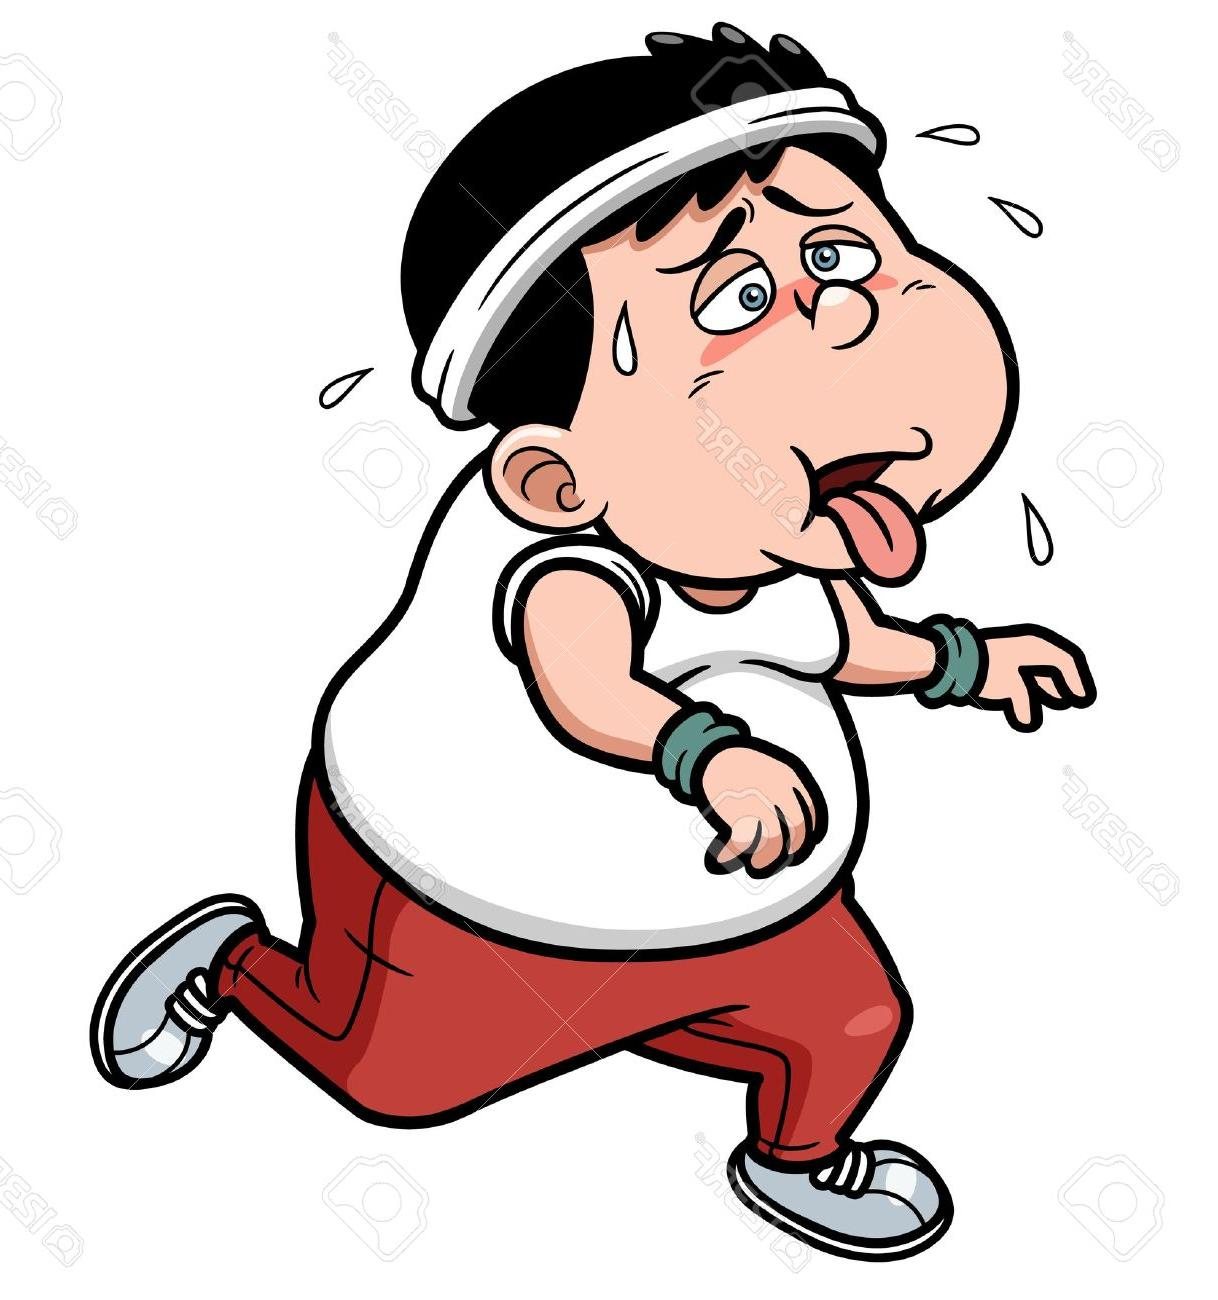 Tired old fatter woman after run clipart clipart freeuse Cartoon Tired Person Group with 89+ items clipart freeuse